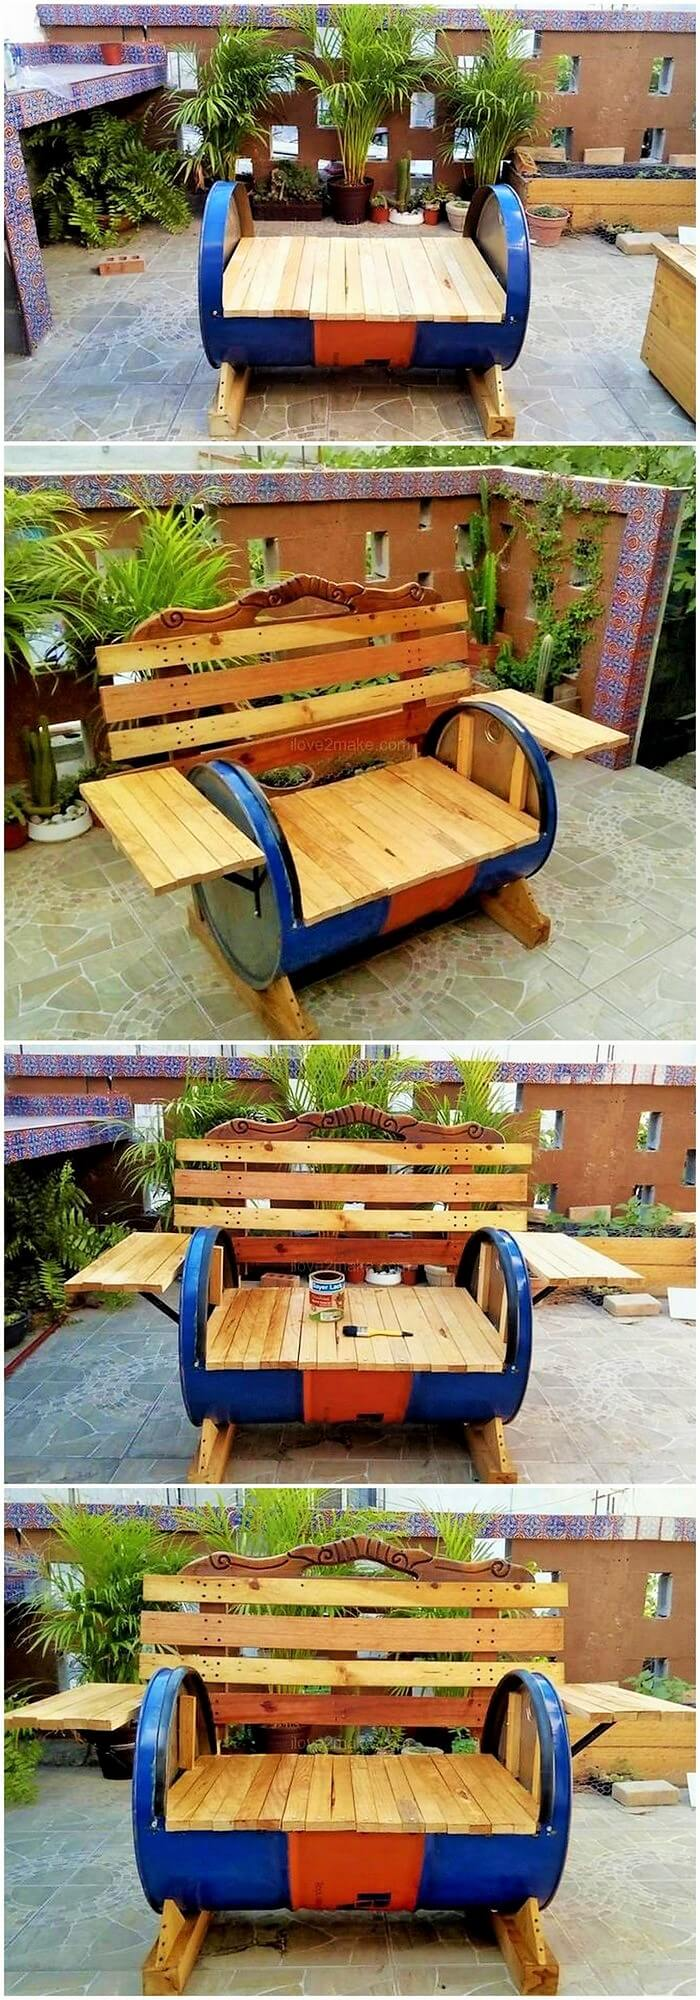 diy-pallet-sofa-with-old-drum-Projects